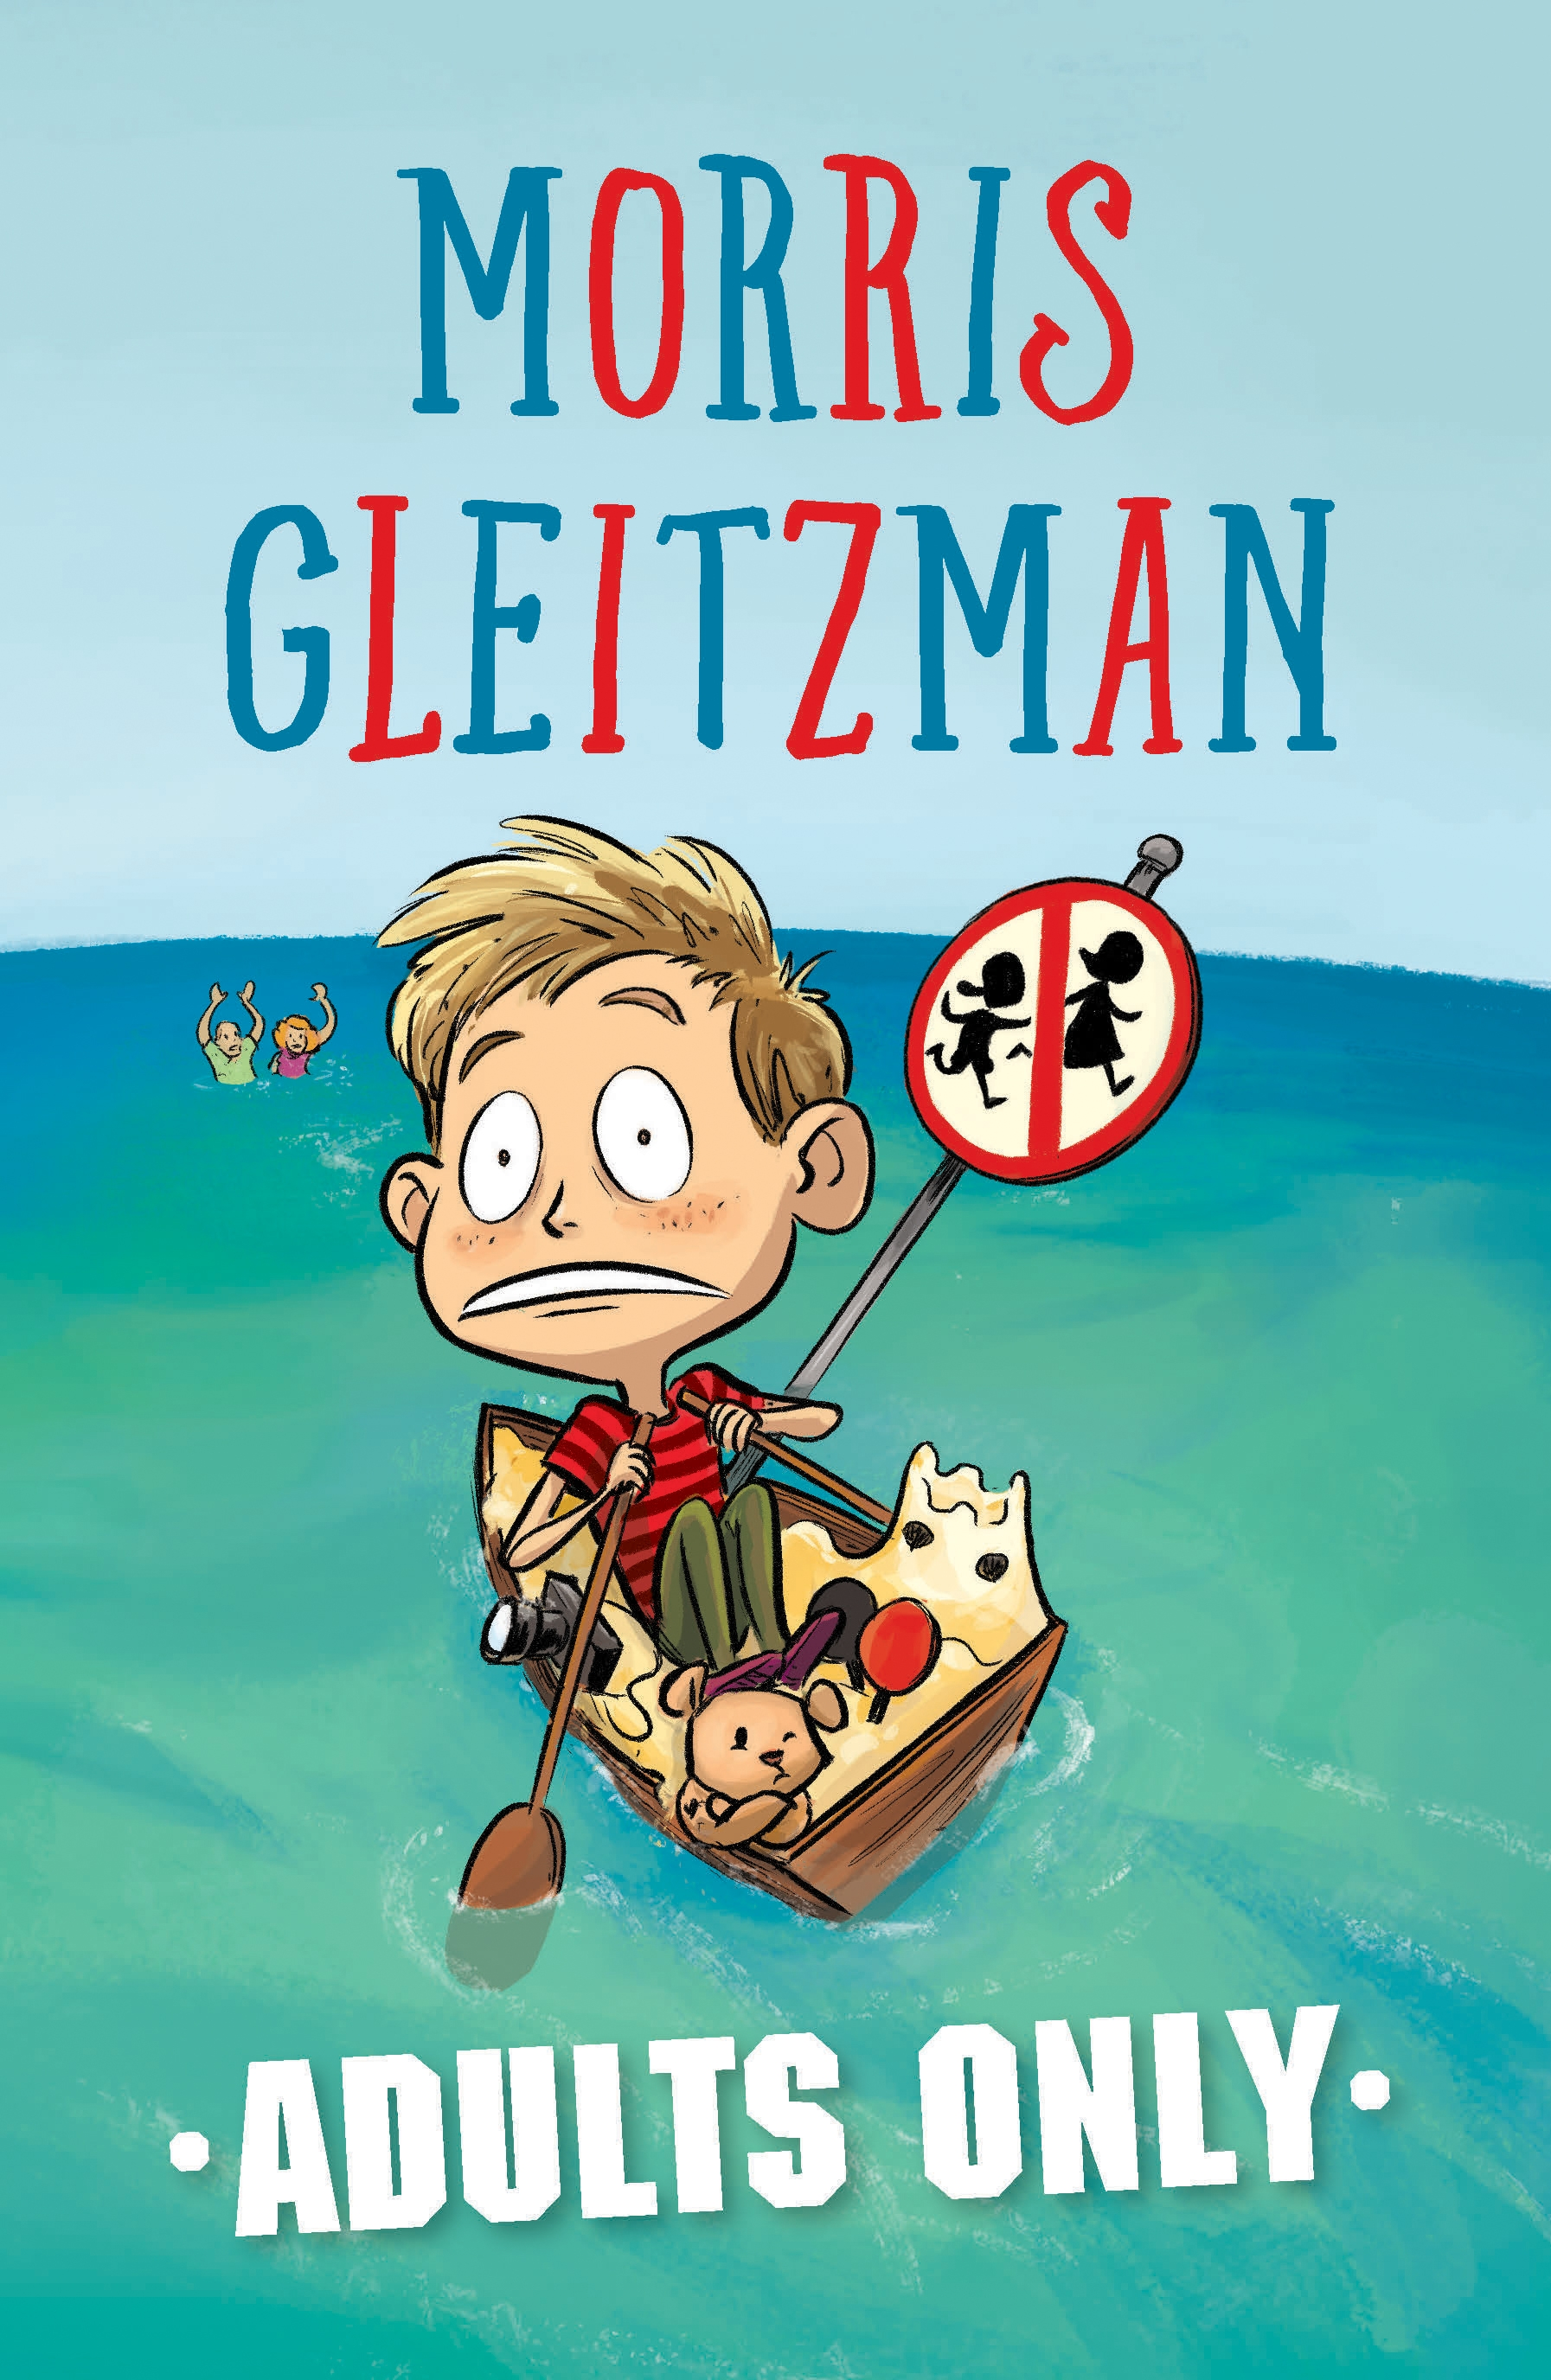 boy overboard by morris gleitzman essay Boy overboard jamal and his sister both love to play football they have lots of friends and a kind loving family but this is afghanistan where conflict prevails games are although the subject matter is serious, gleitzman manages to use humour to make this an accessible story for upper primary school children ' penalty.